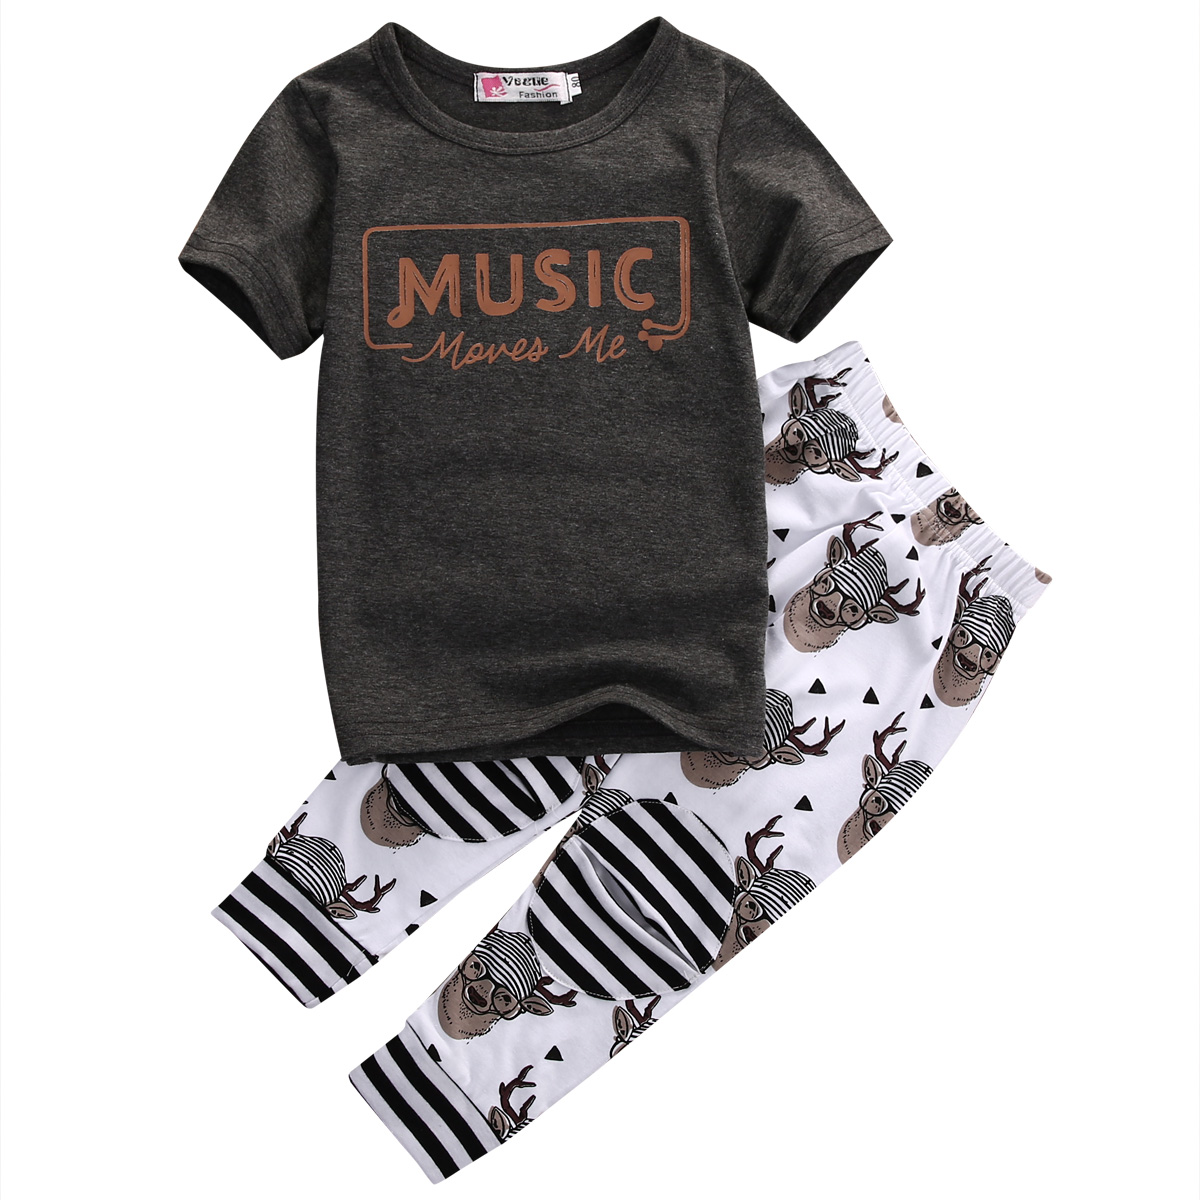 2pcs summer fashion hot Baby Boys Girls Kids music  T Shirt Tops + Long Pants Trousers Rompers Outfit Set Clothes 1-5Y fashion handpainted palm sea sailing pattern hot summer jazz hat for boys